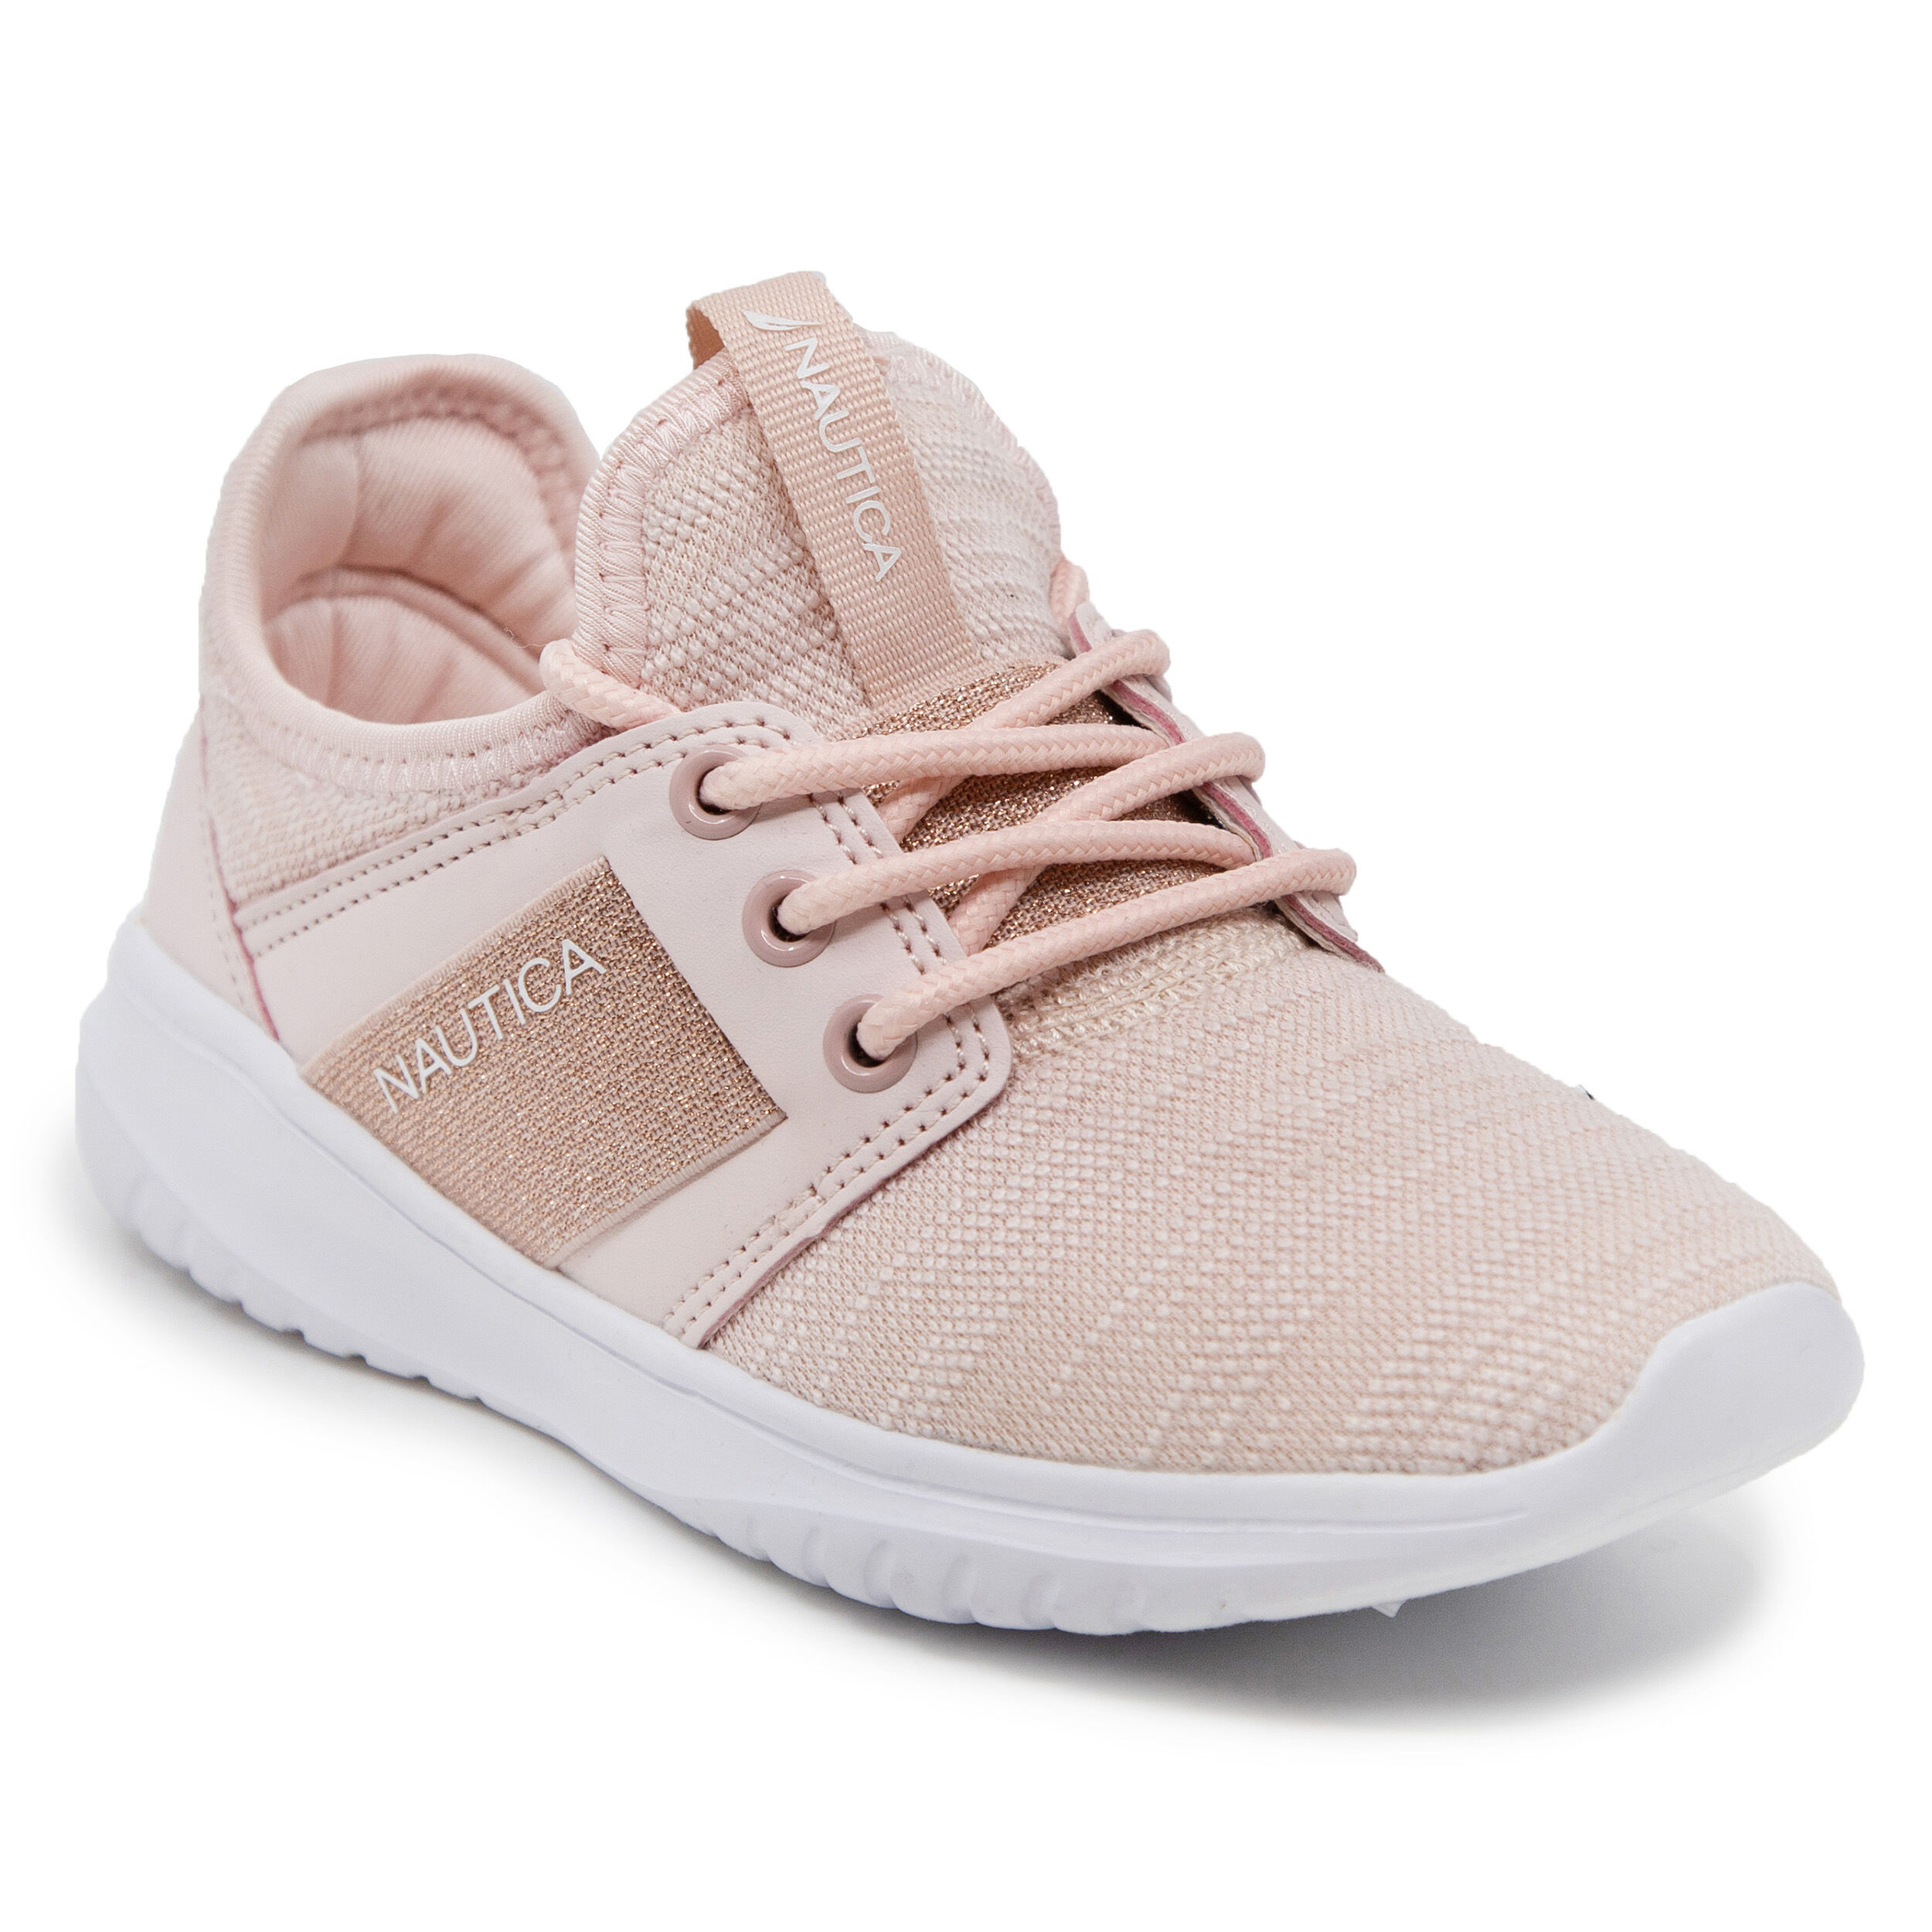 GIRL'S COMFY ALL DAY SNEAKER | Nautica